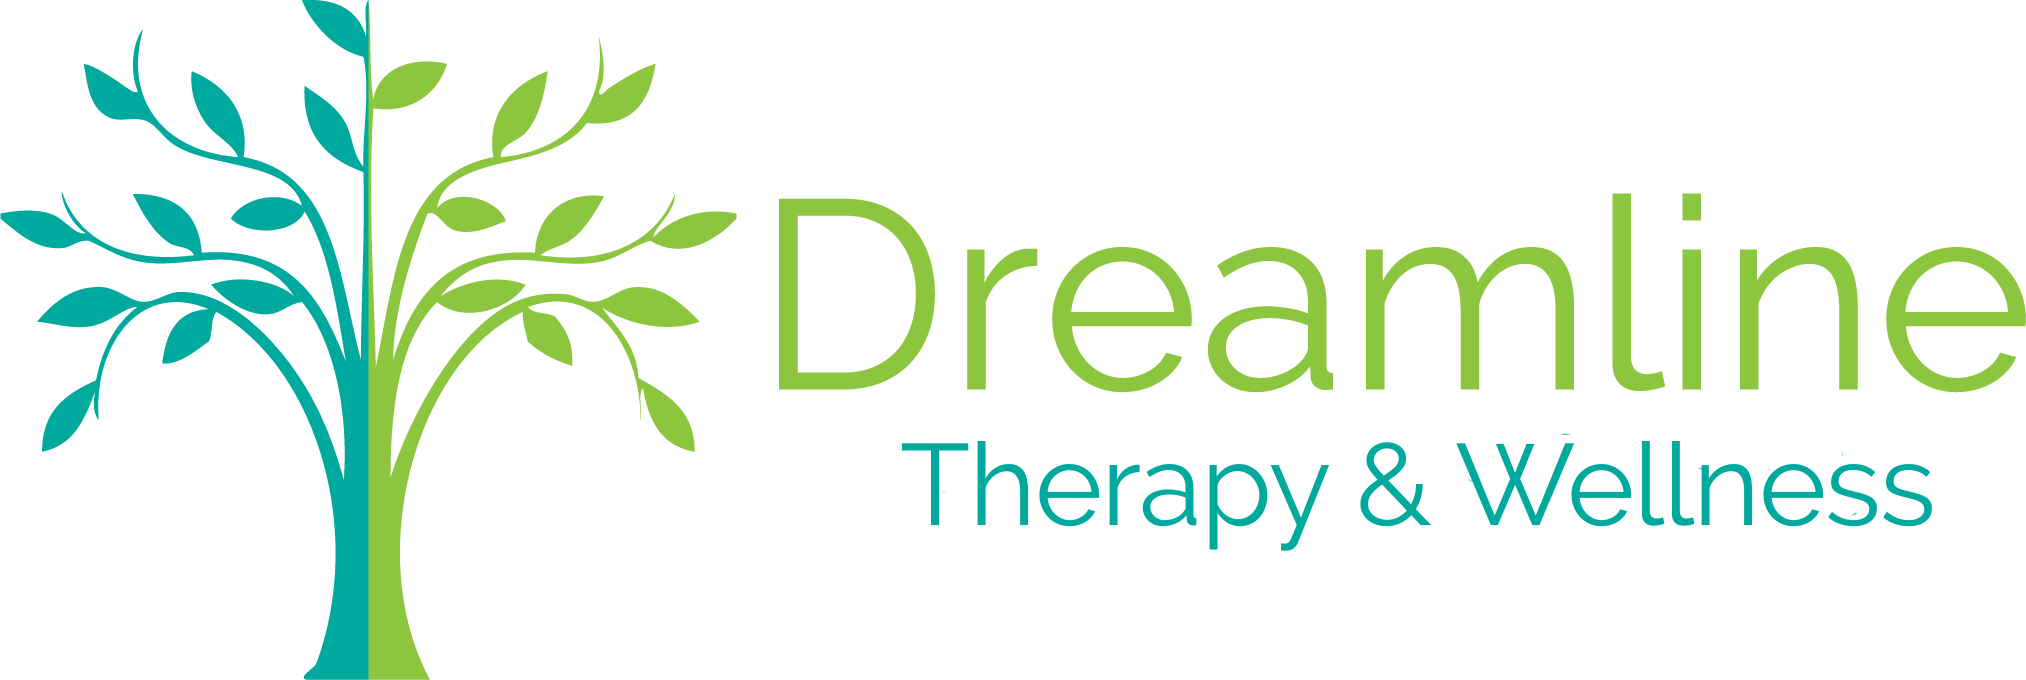 Dreamline Therapy and Wellness